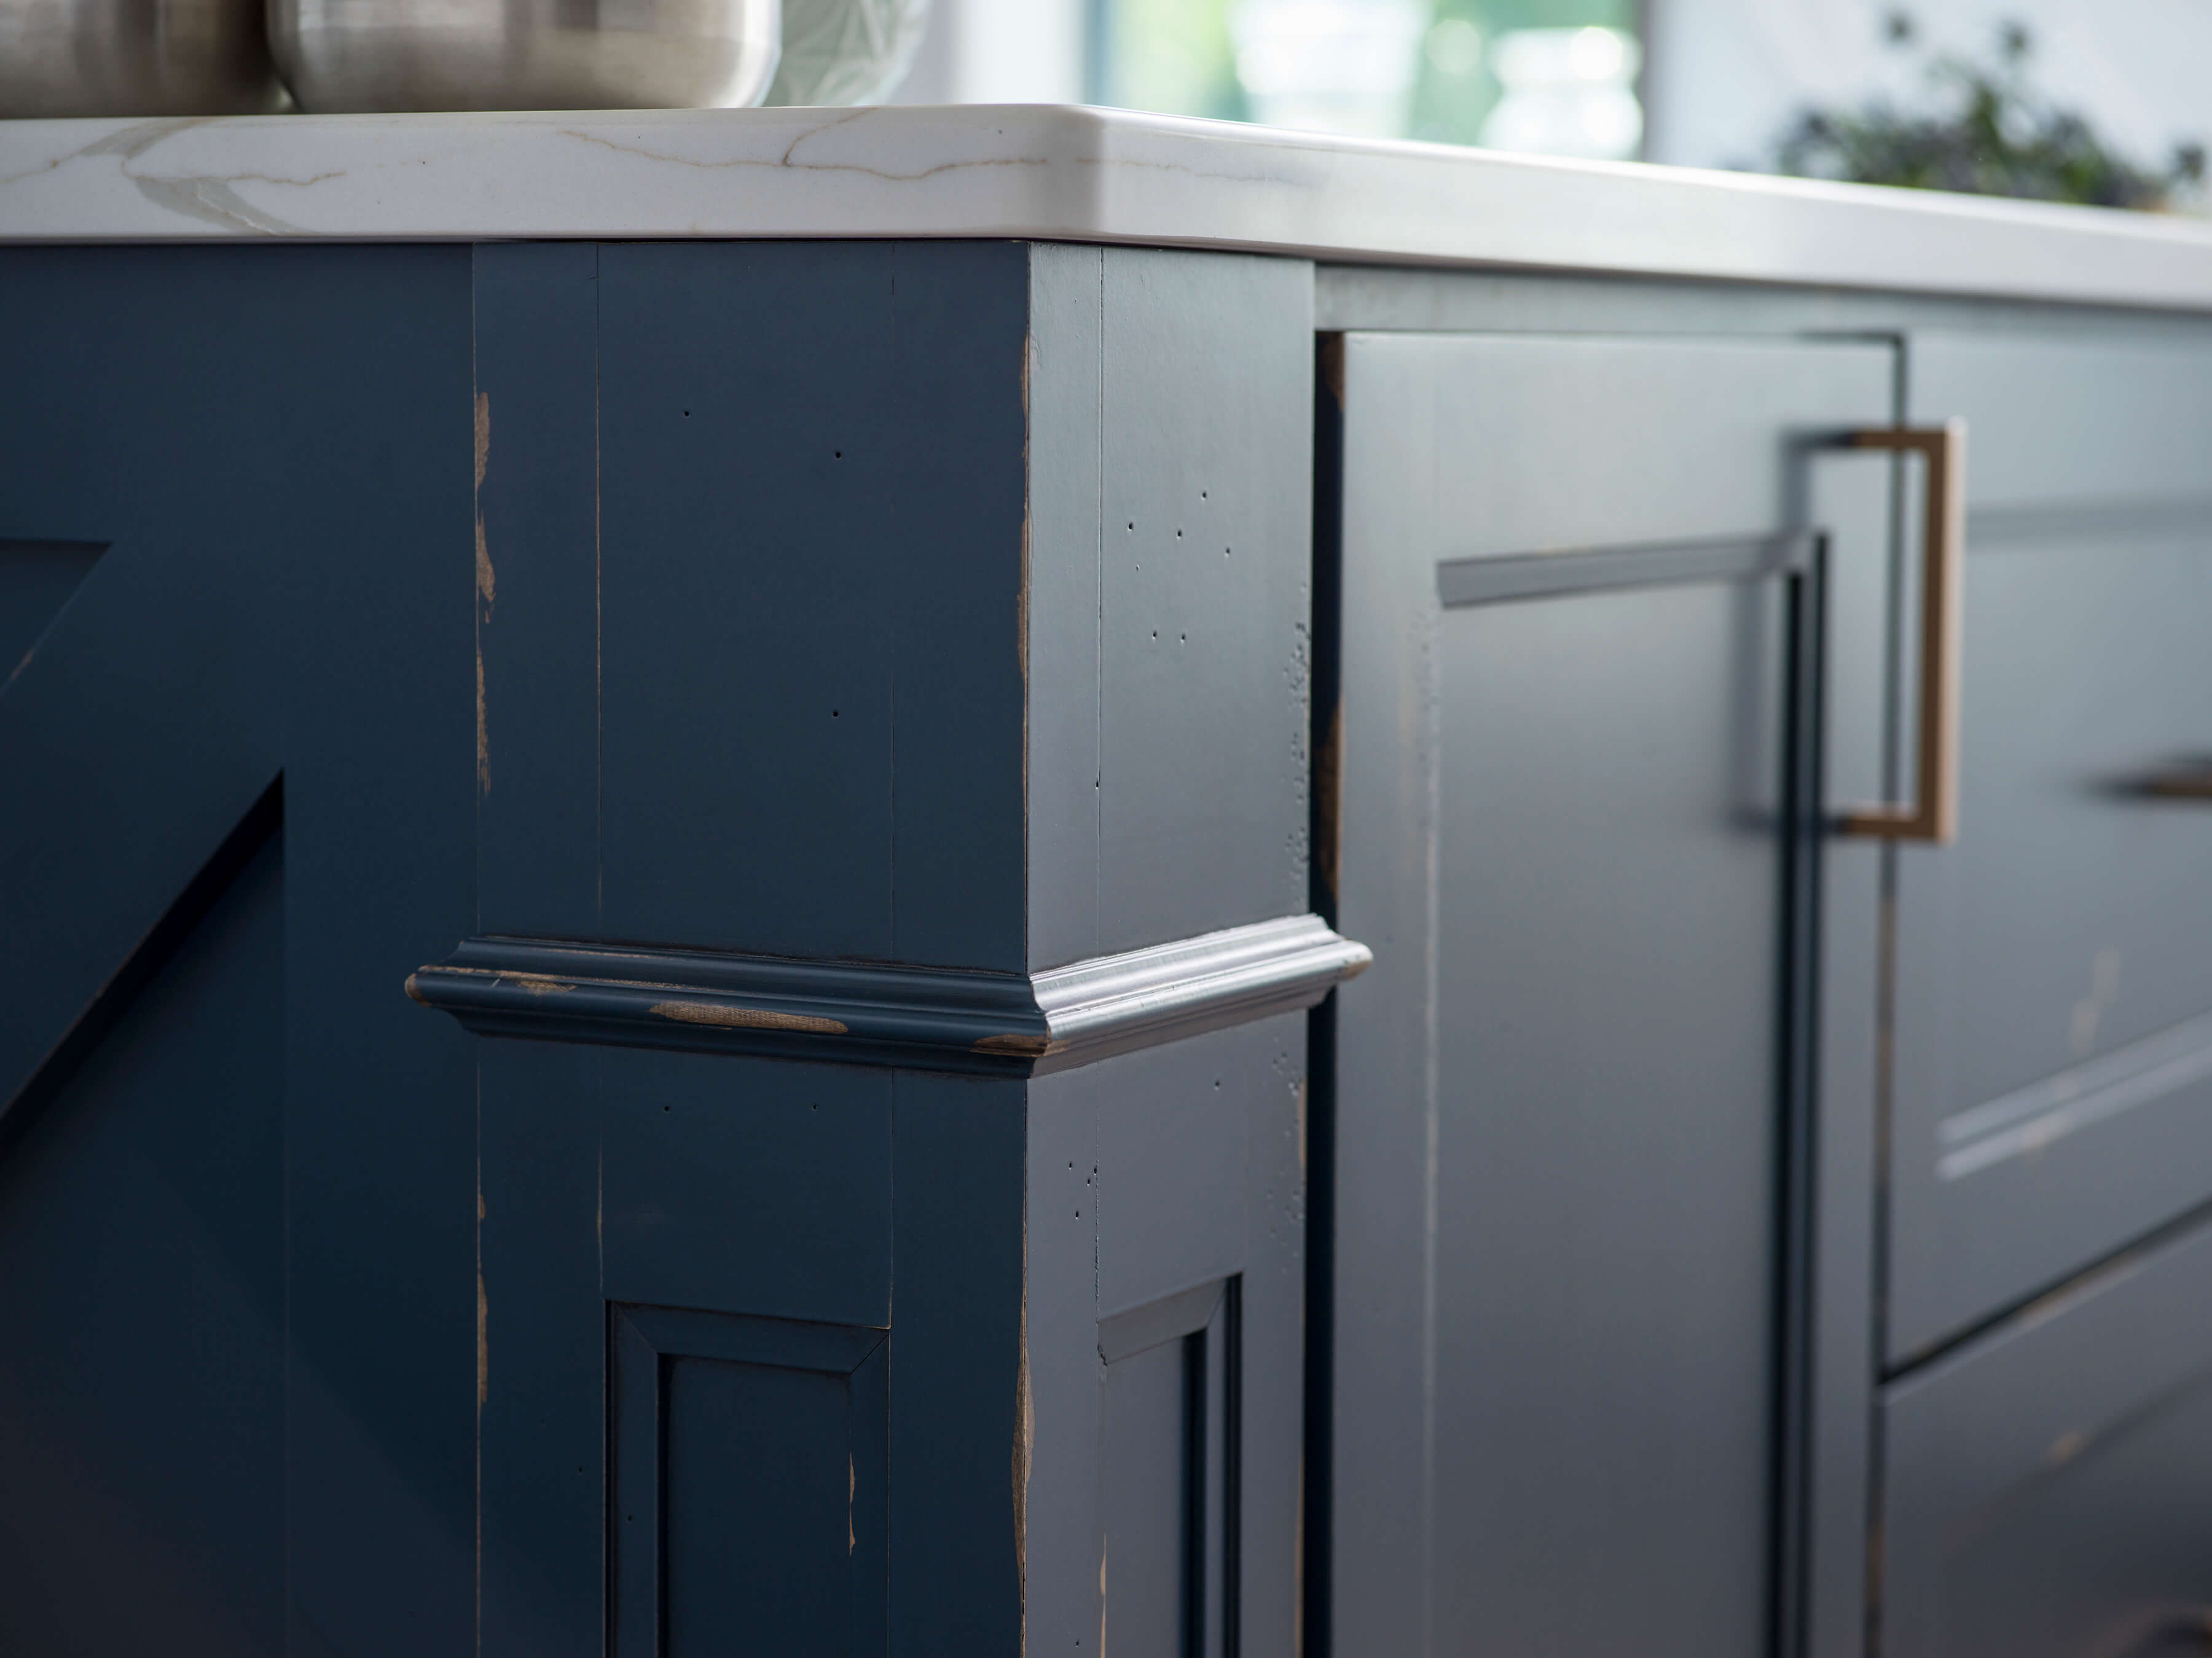 A kitchen island with a beautiful distressed paint finish with Dura Supreme's Heritage Paint finish in a custom Navy blue color.